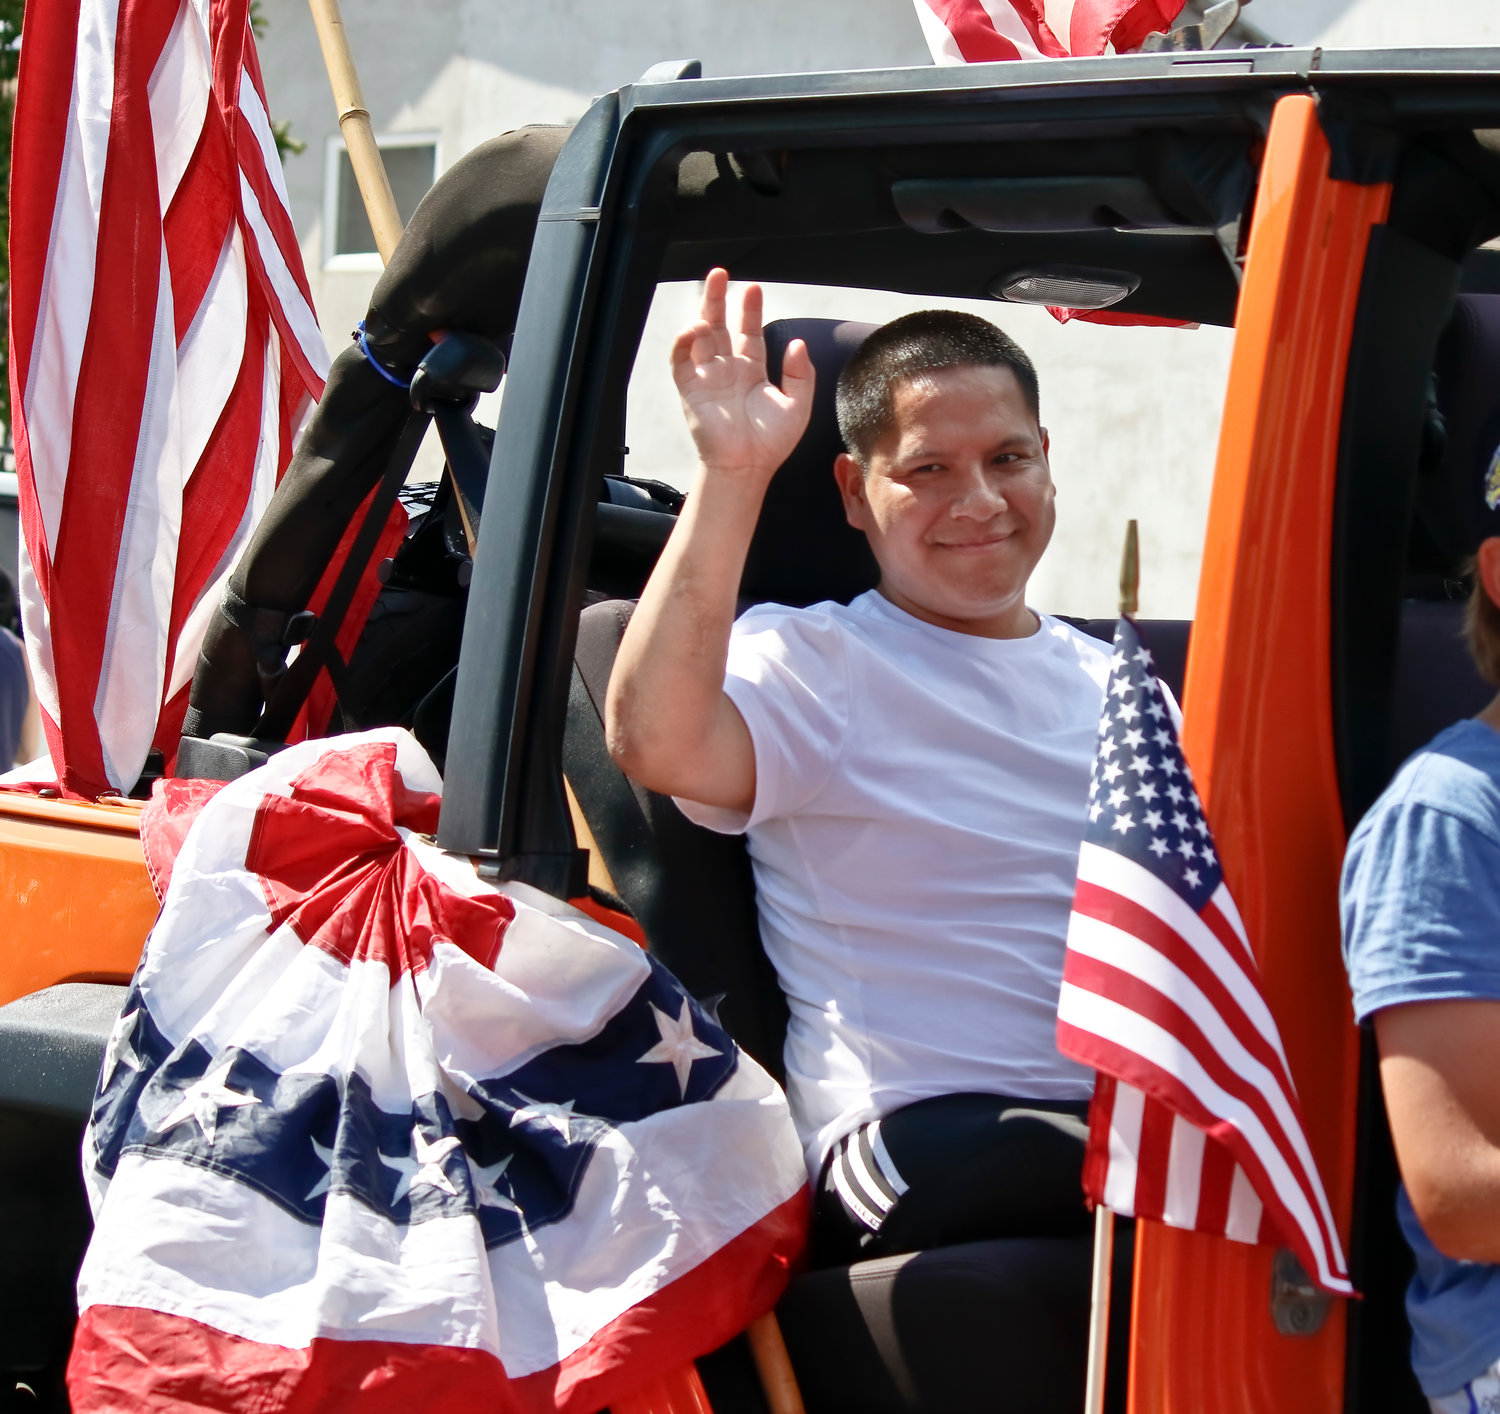 Hundreds of spectators cheered U.S. Marine Corps veteran Luis Remache and other wounded veterans from Walter Reed National Military Medical Center during the Long Beach Waterfront Warriors' 11th annual Welcome Parade on July 14.